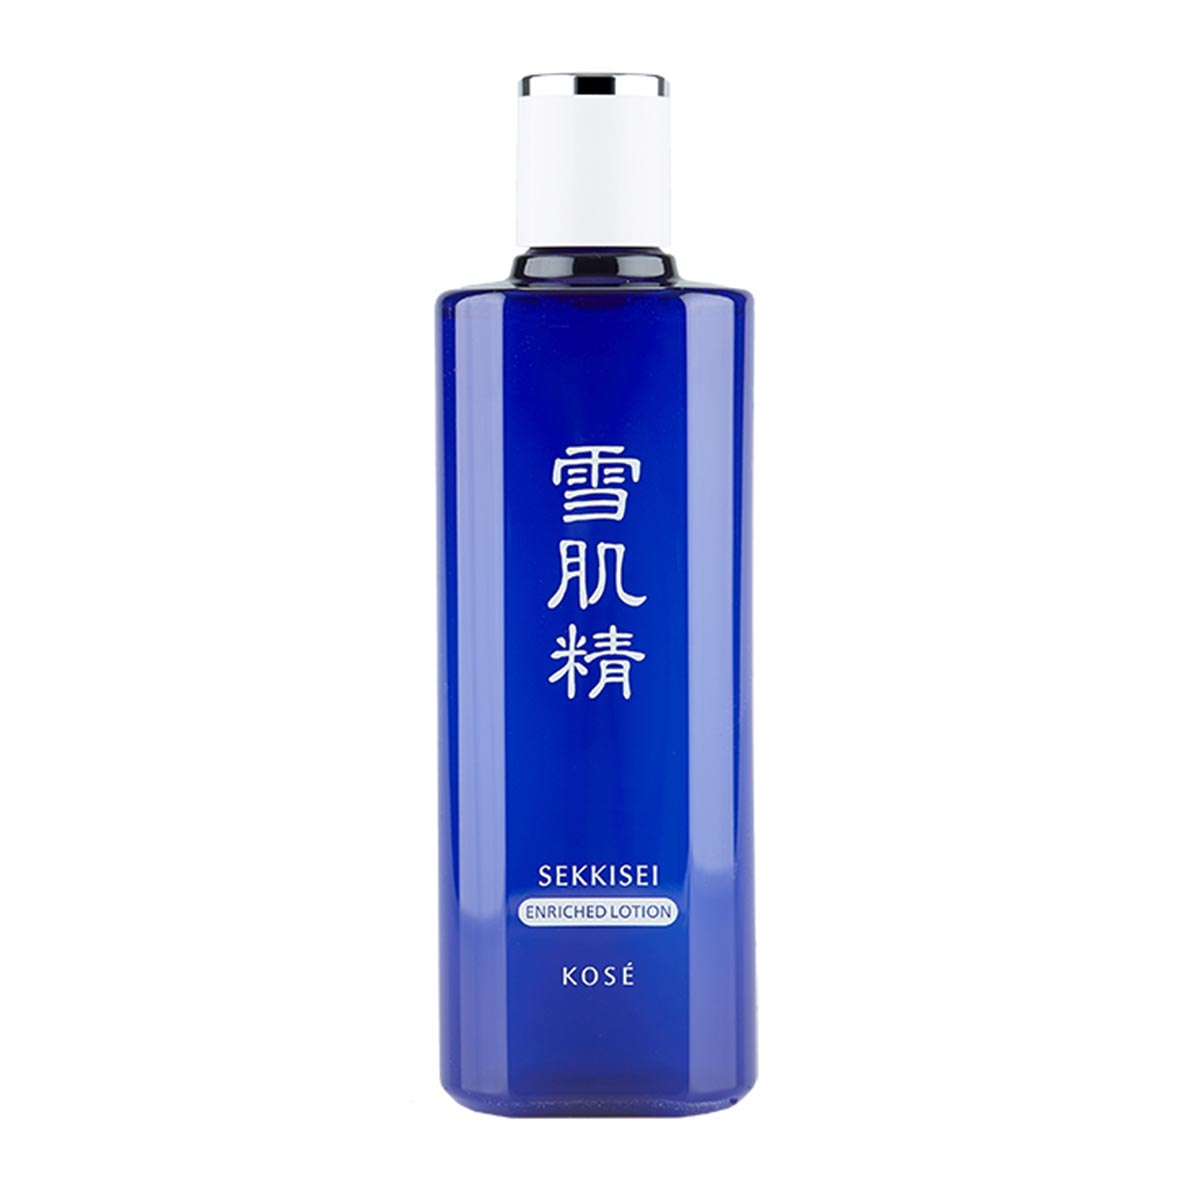 Sekkisei enriched lotion 360ml